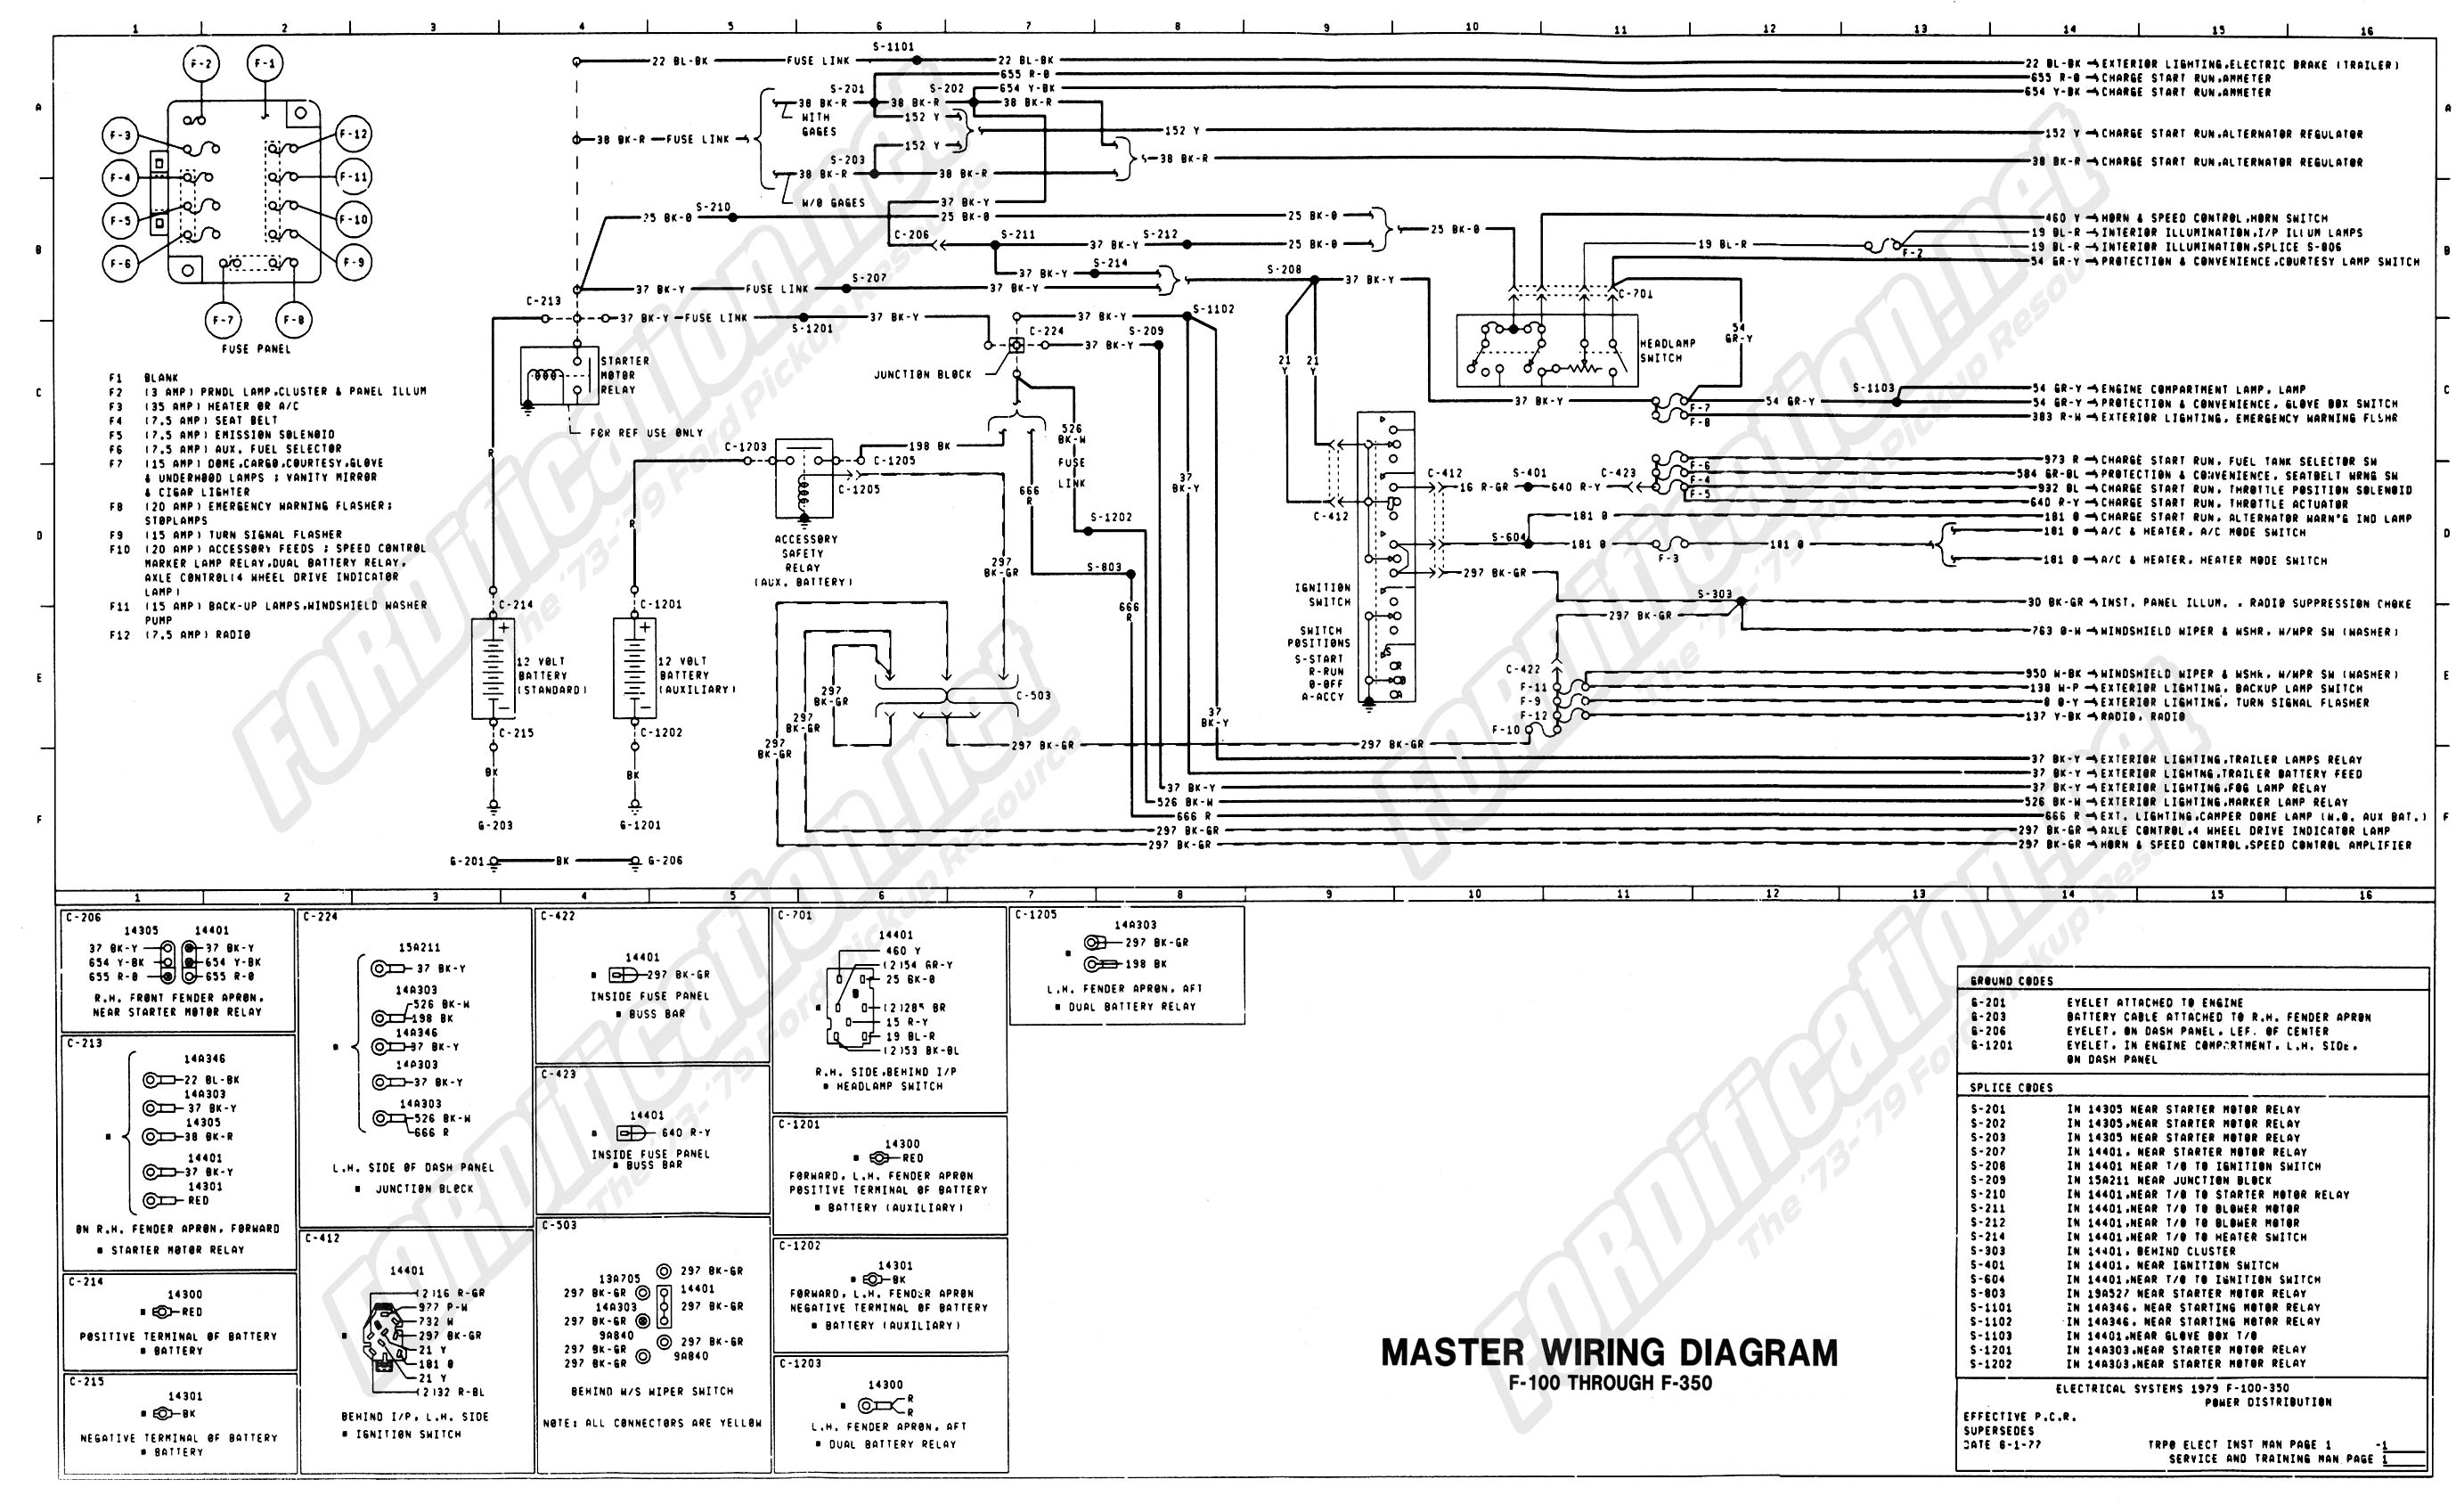 2001 sterling fuse box simple wiring diagram schema home fuse box 2001 sterling fuse box [ 2766 x 1688 Pixel ]